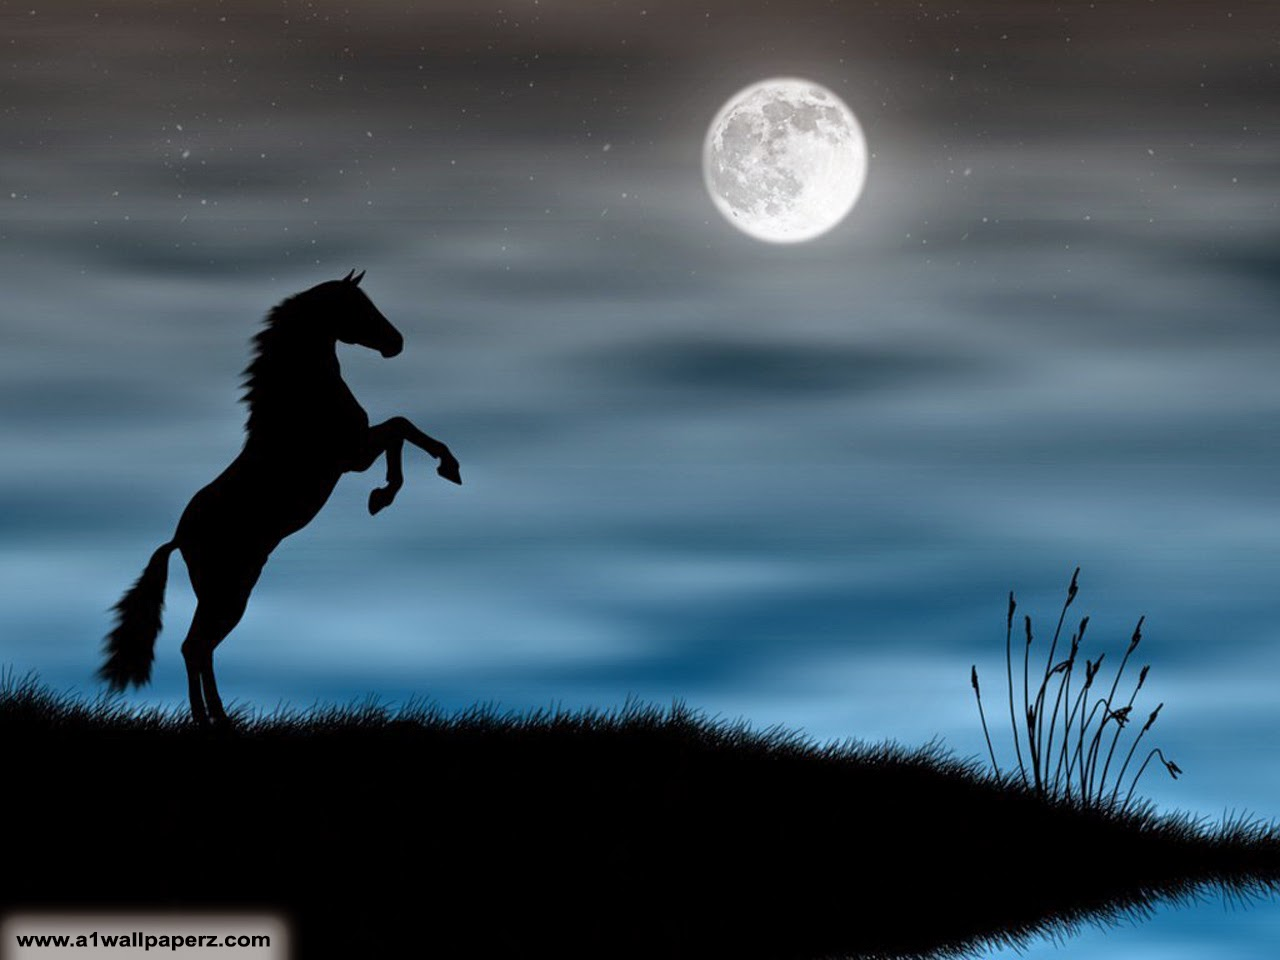 Good   Wallpaper Horse Night - romantic-moonlight-wallpaper-large-8  You Should Have_41540.jpg